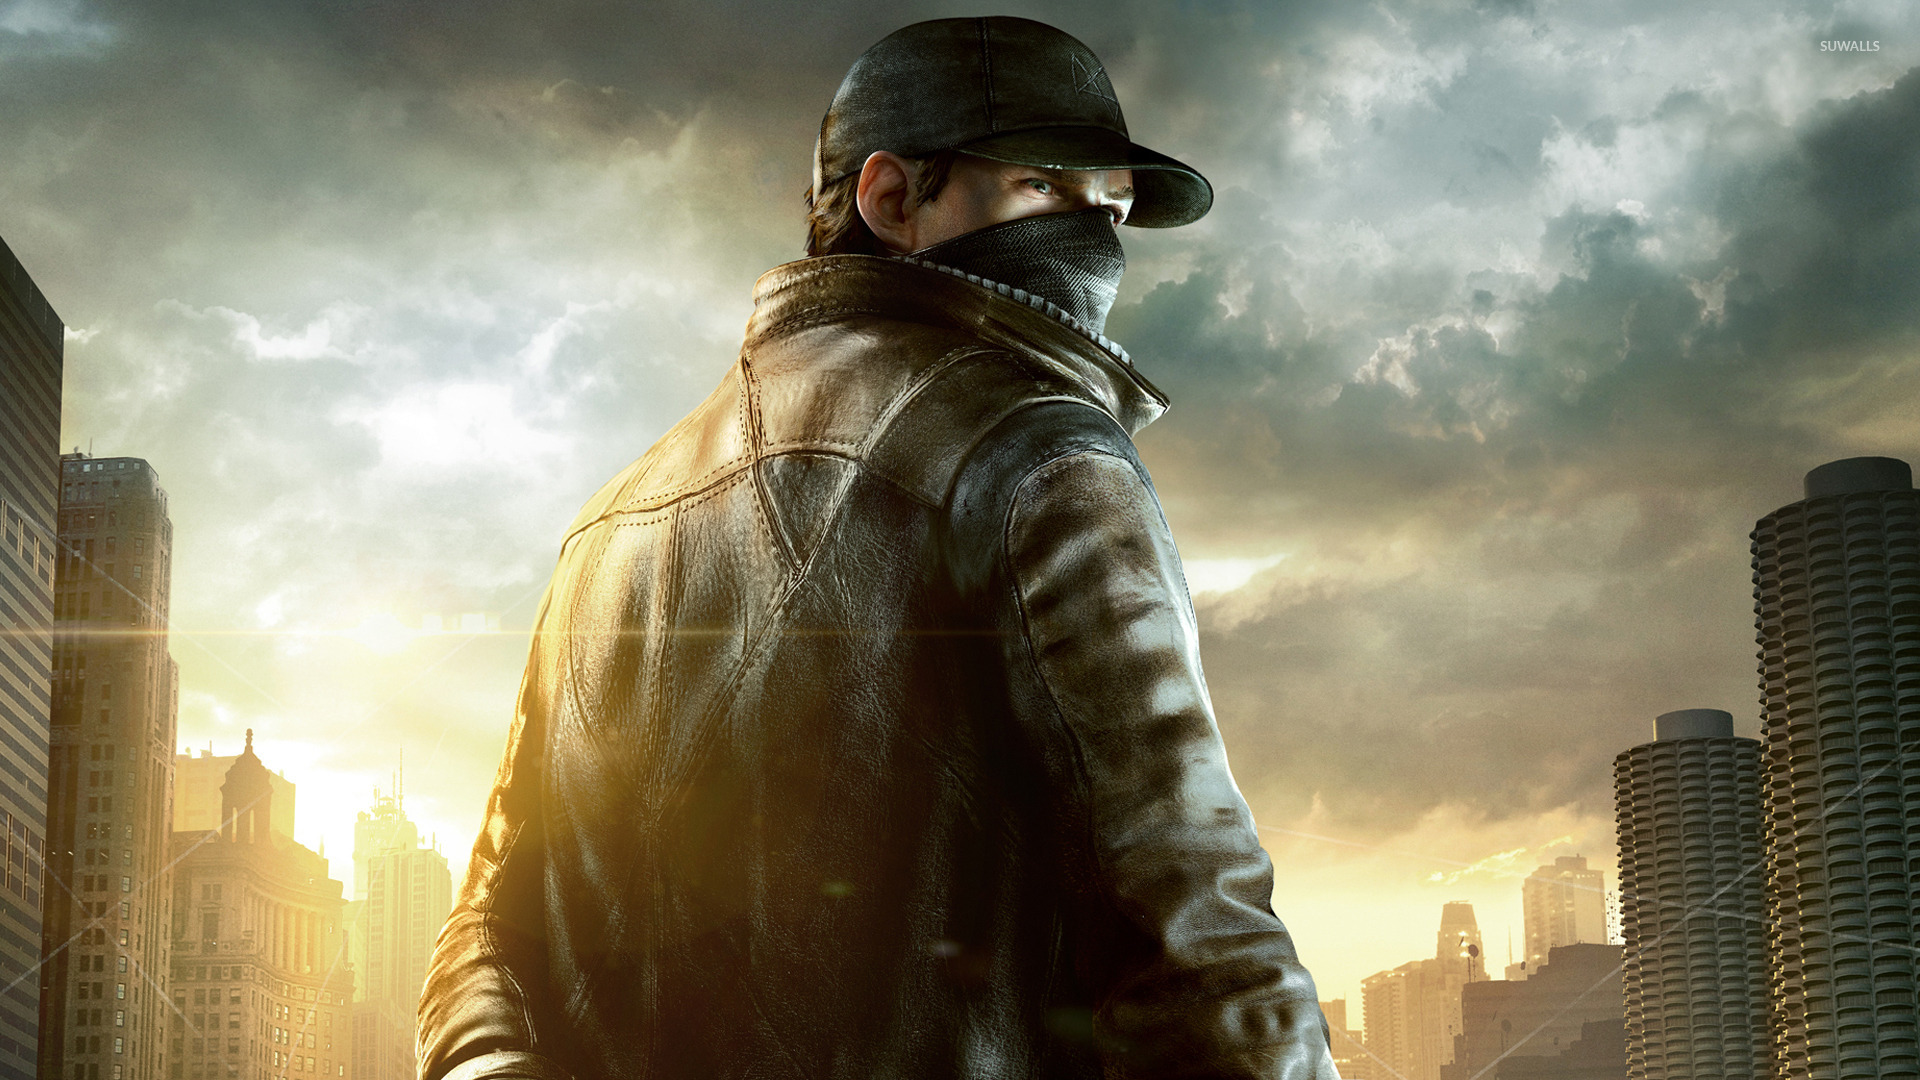 Aiden Pearce Watch Dogs 7 Wallpaper Game Wallpapers